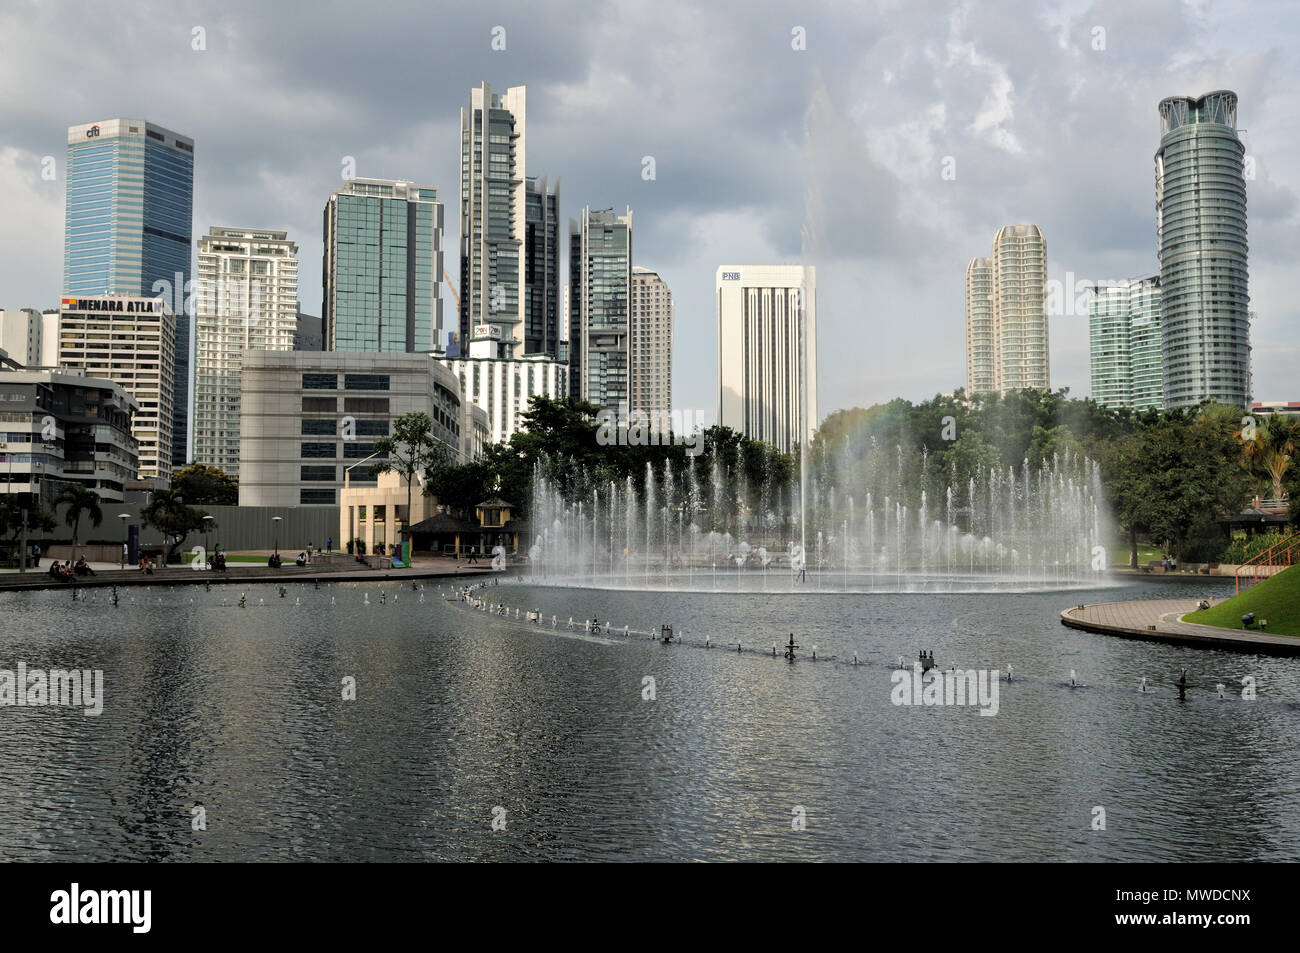 Fountains and surrounding buildings from KLCC park, Kuala Lumpur, Malaysia Stock Photo